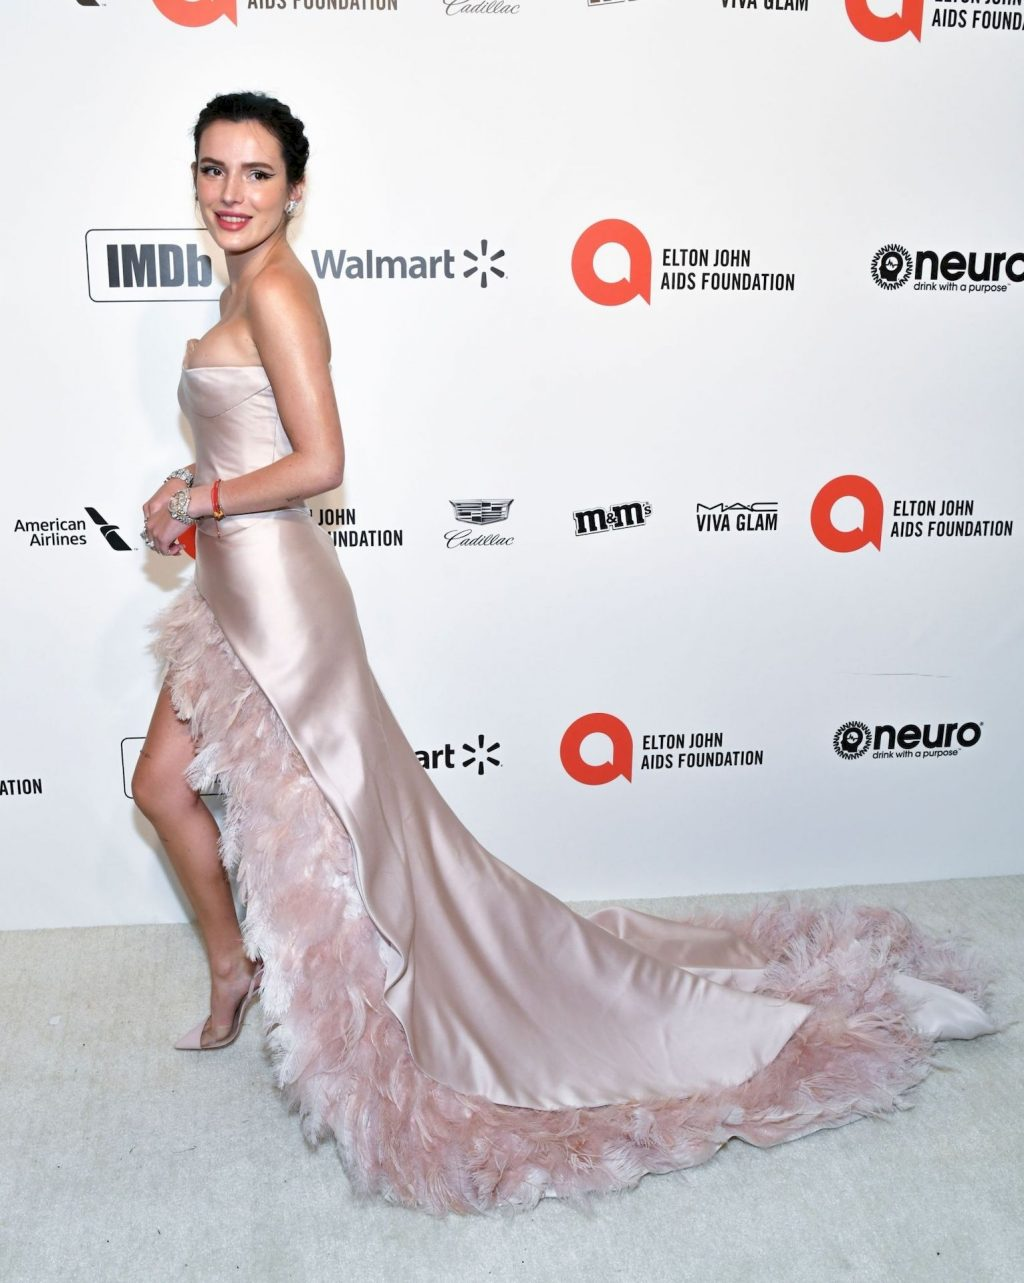 Bella Thorne Shows Off Her Assets at the 28th Annual Elton John AIDS Foundation Party (25 Photos)